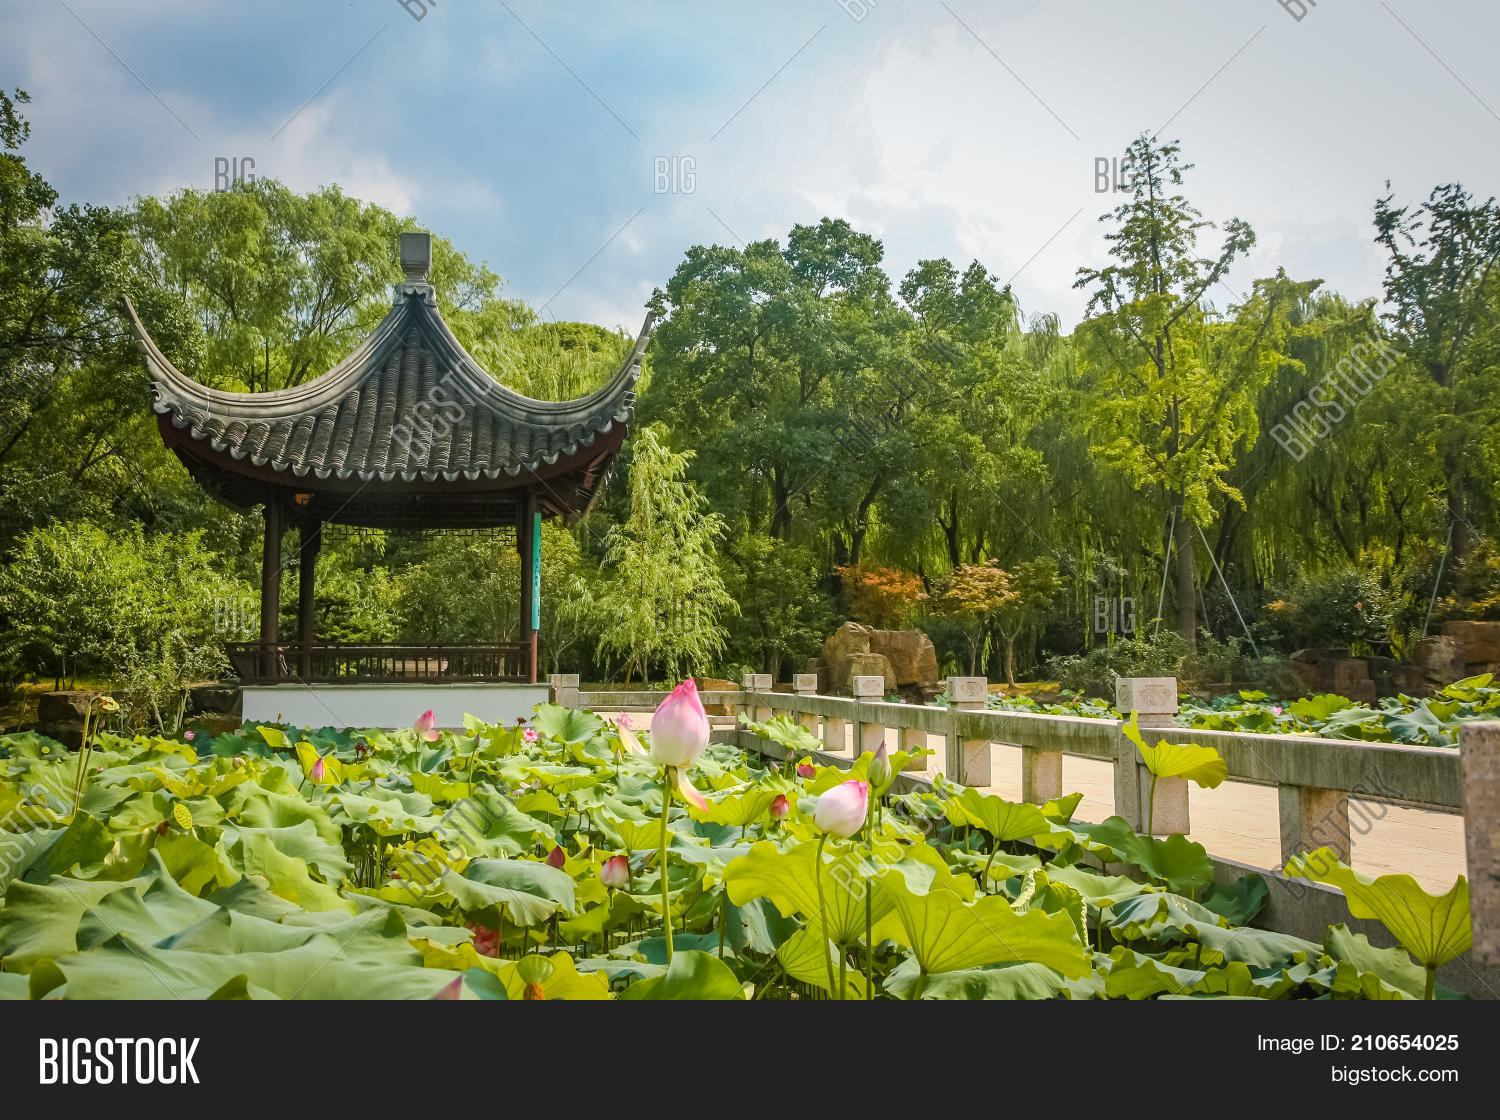 Classical chinese image photo free trial bigstock a classical chinese pavilion set against a pond of lotus flowers in a garden in suzhou izmirmasajfo